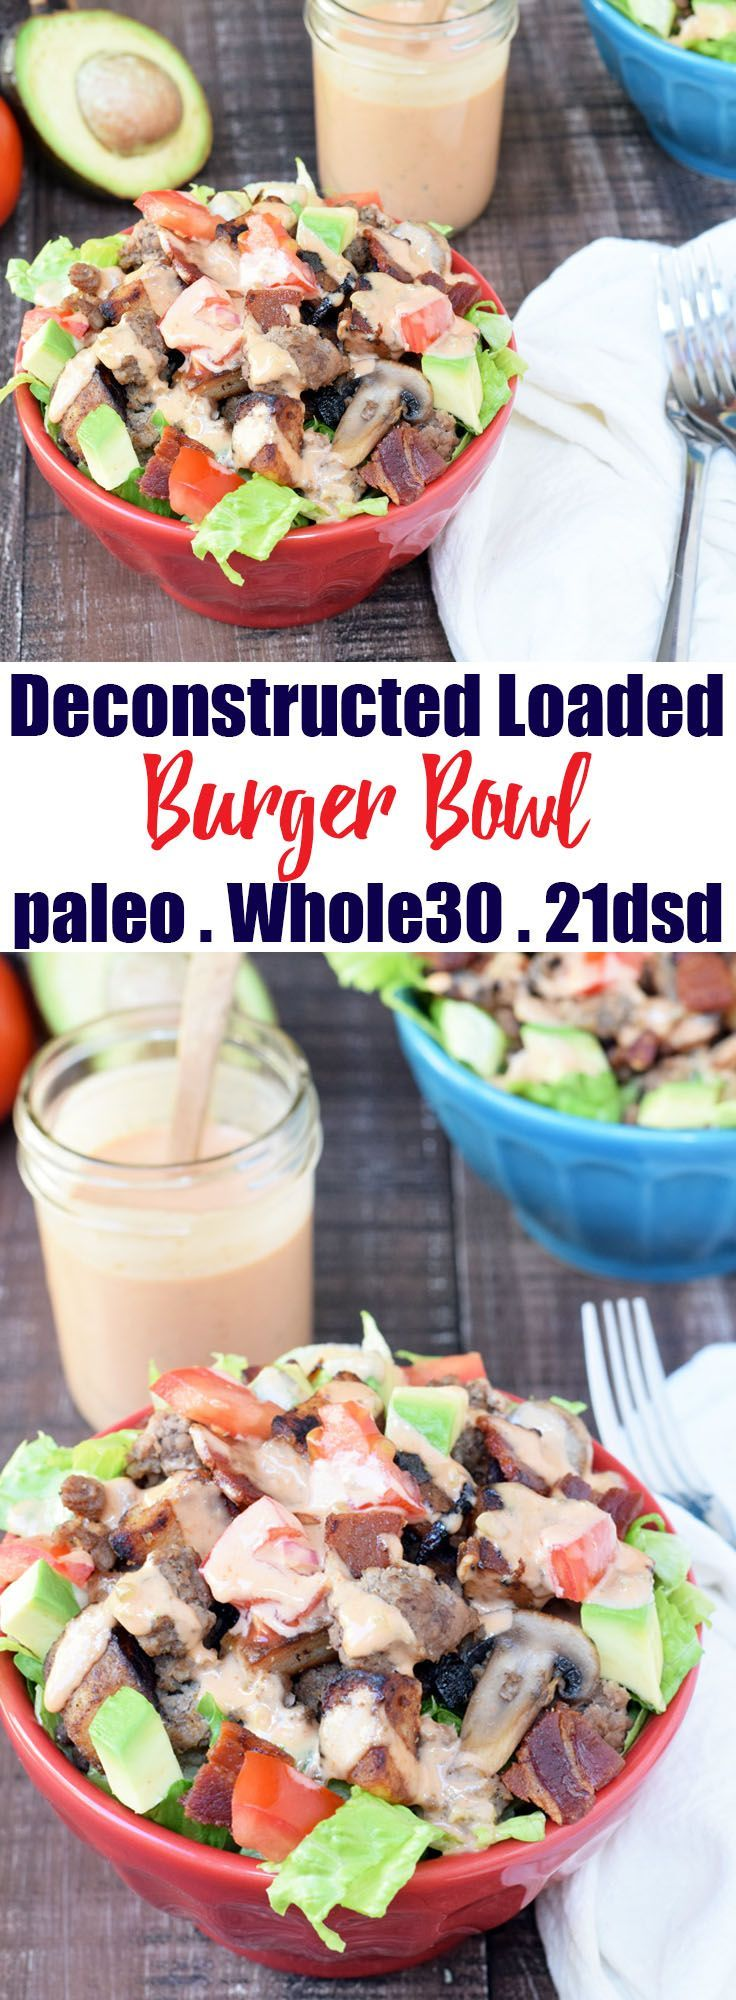 deconstructed loaded burger bowl recipe loaded burgers whole food recipes paleo recipes deconstructed loaded burger bowl